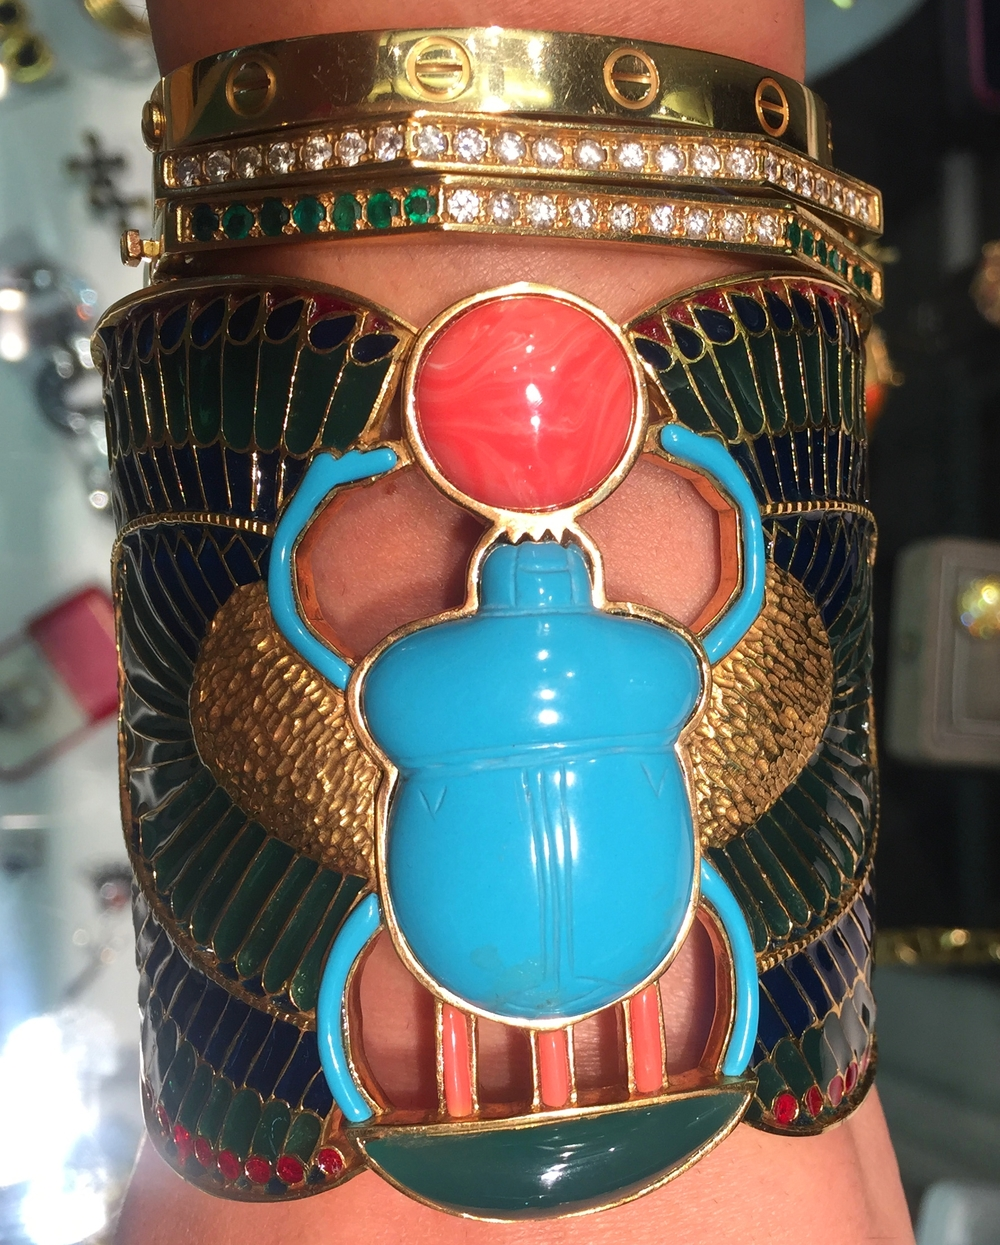 Walk like an Egyptian. An Egyptian covered in turquoise, plique-a-jour enamel, and gold scarabs.